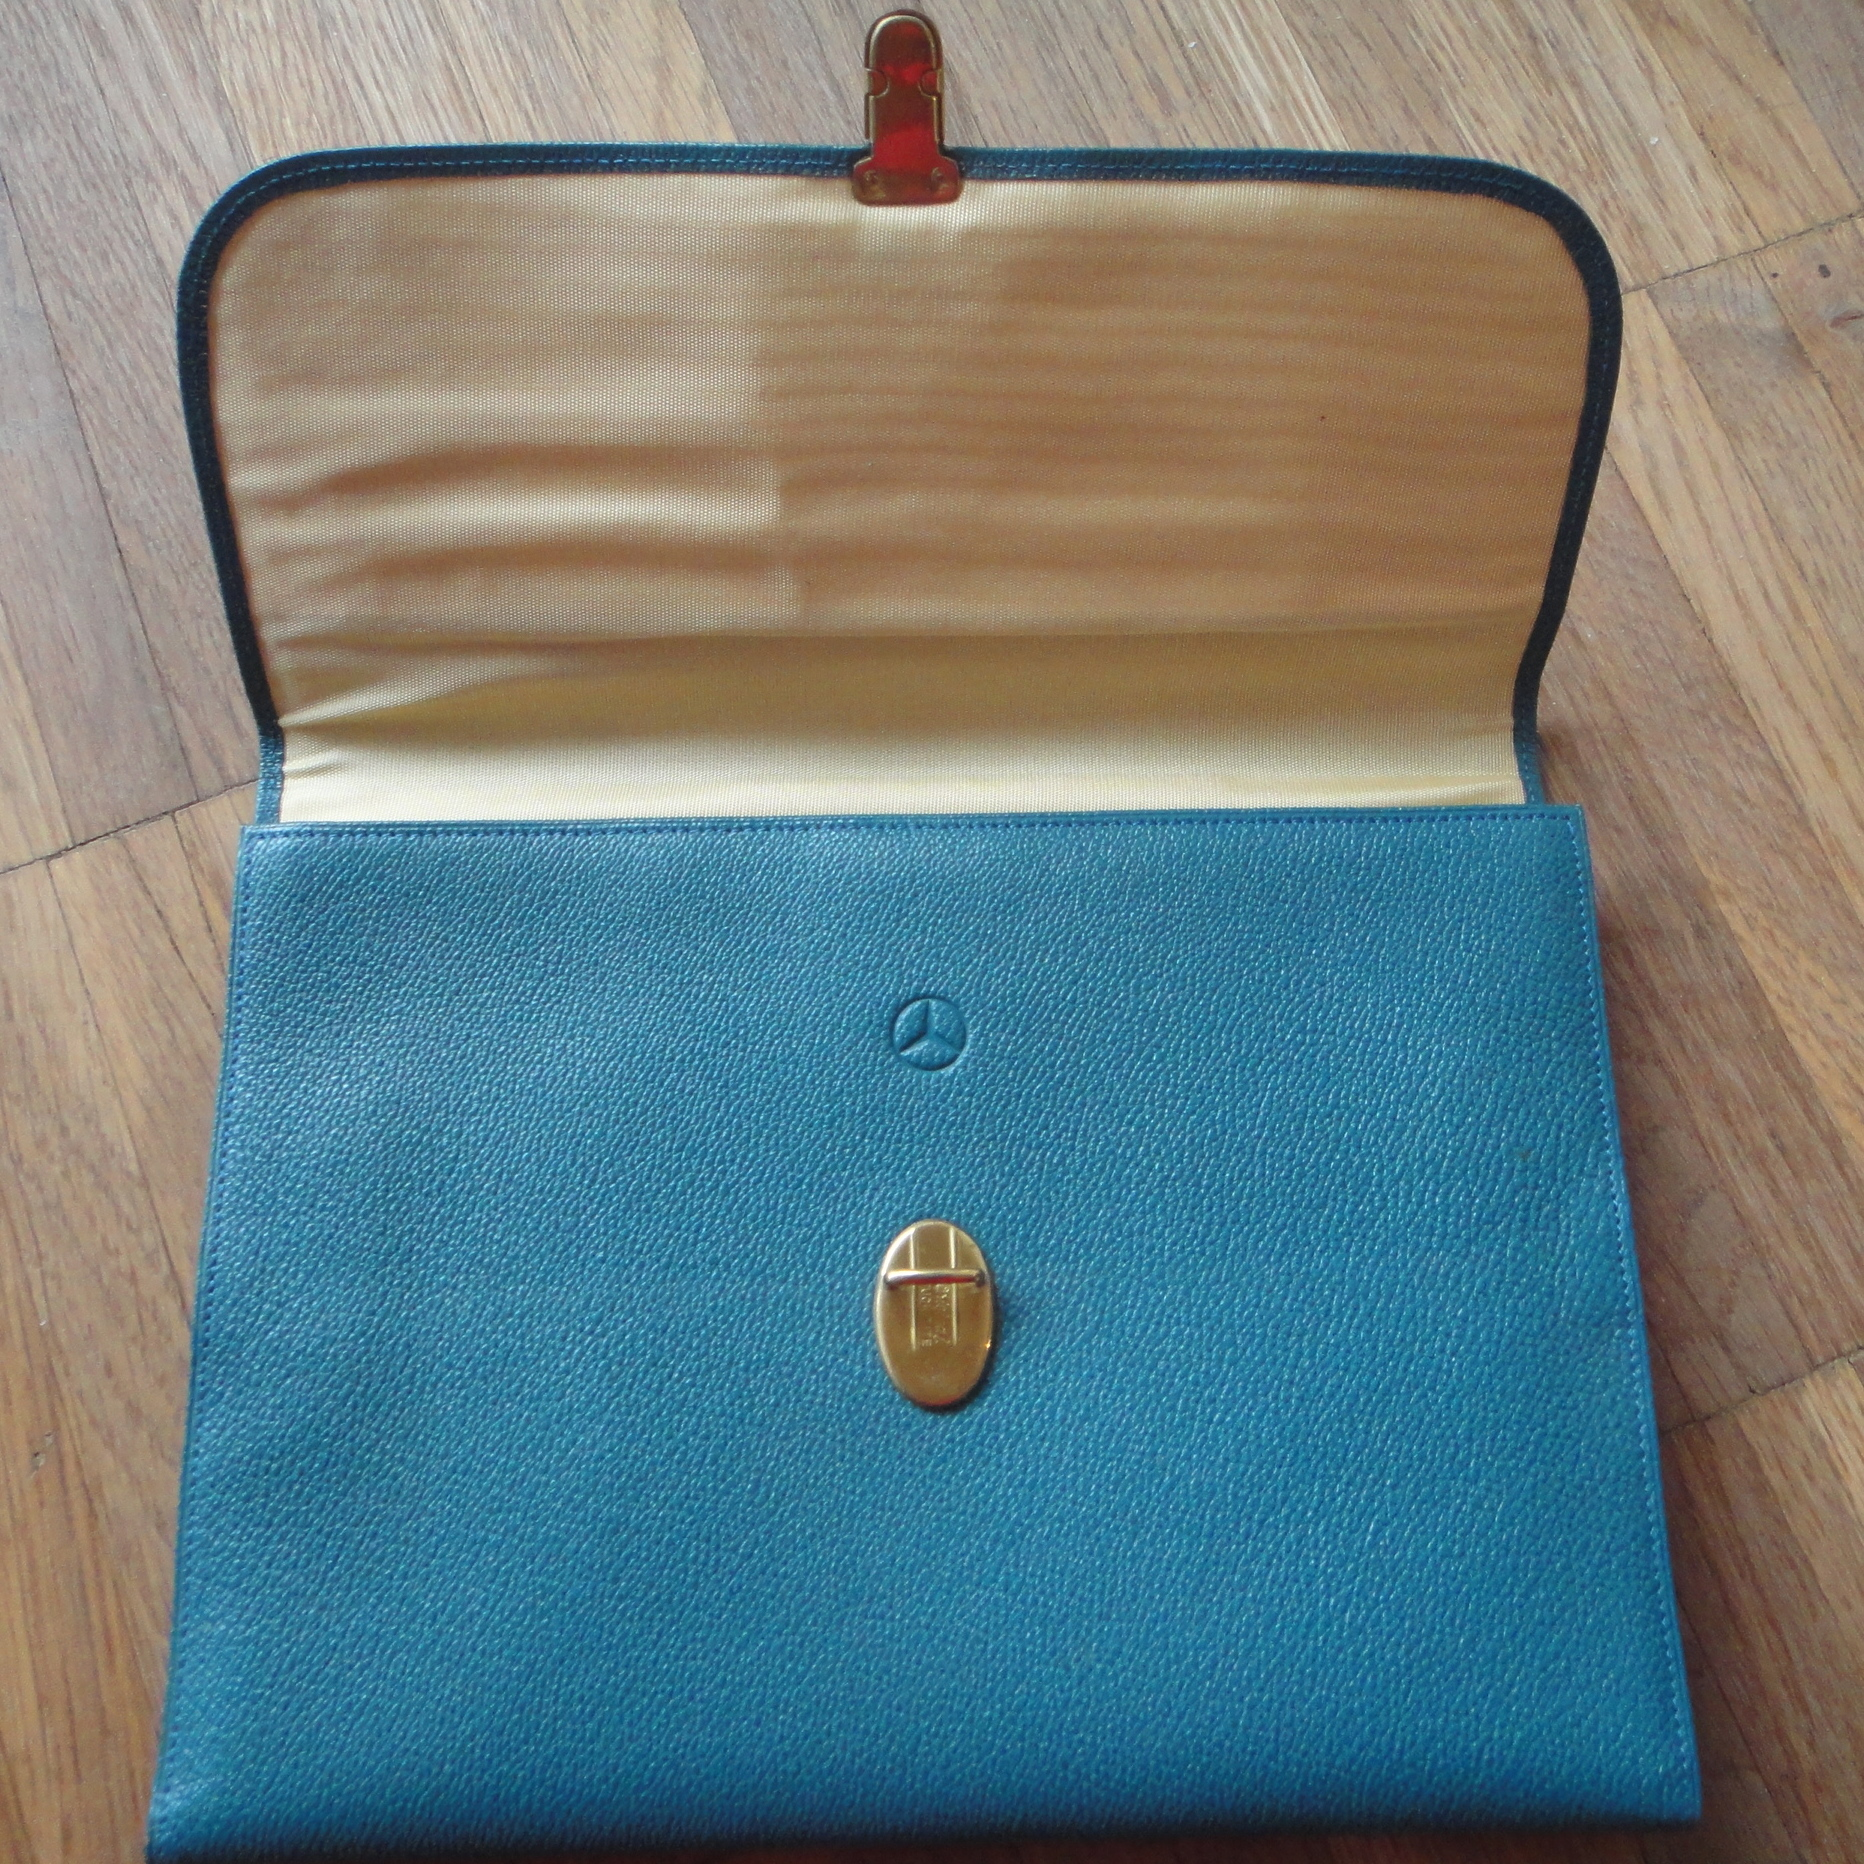 vintage Mercedes-Benz pouch for nylons